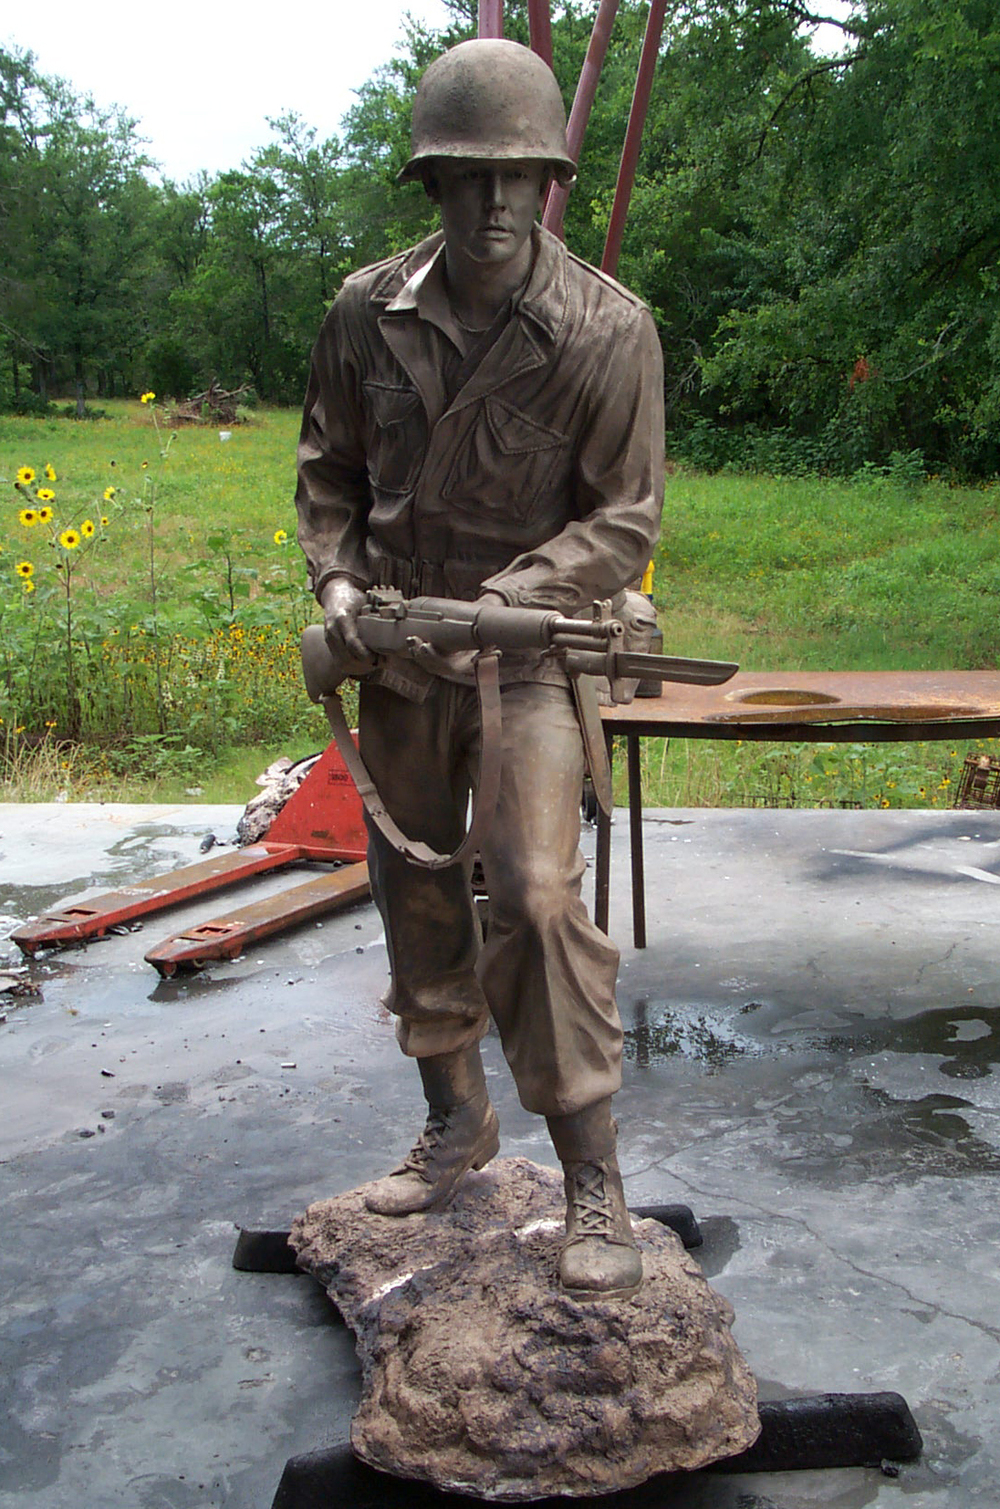 World War II Soldier Monument, 10th Mountain Division, US Army, Camp Swift TX